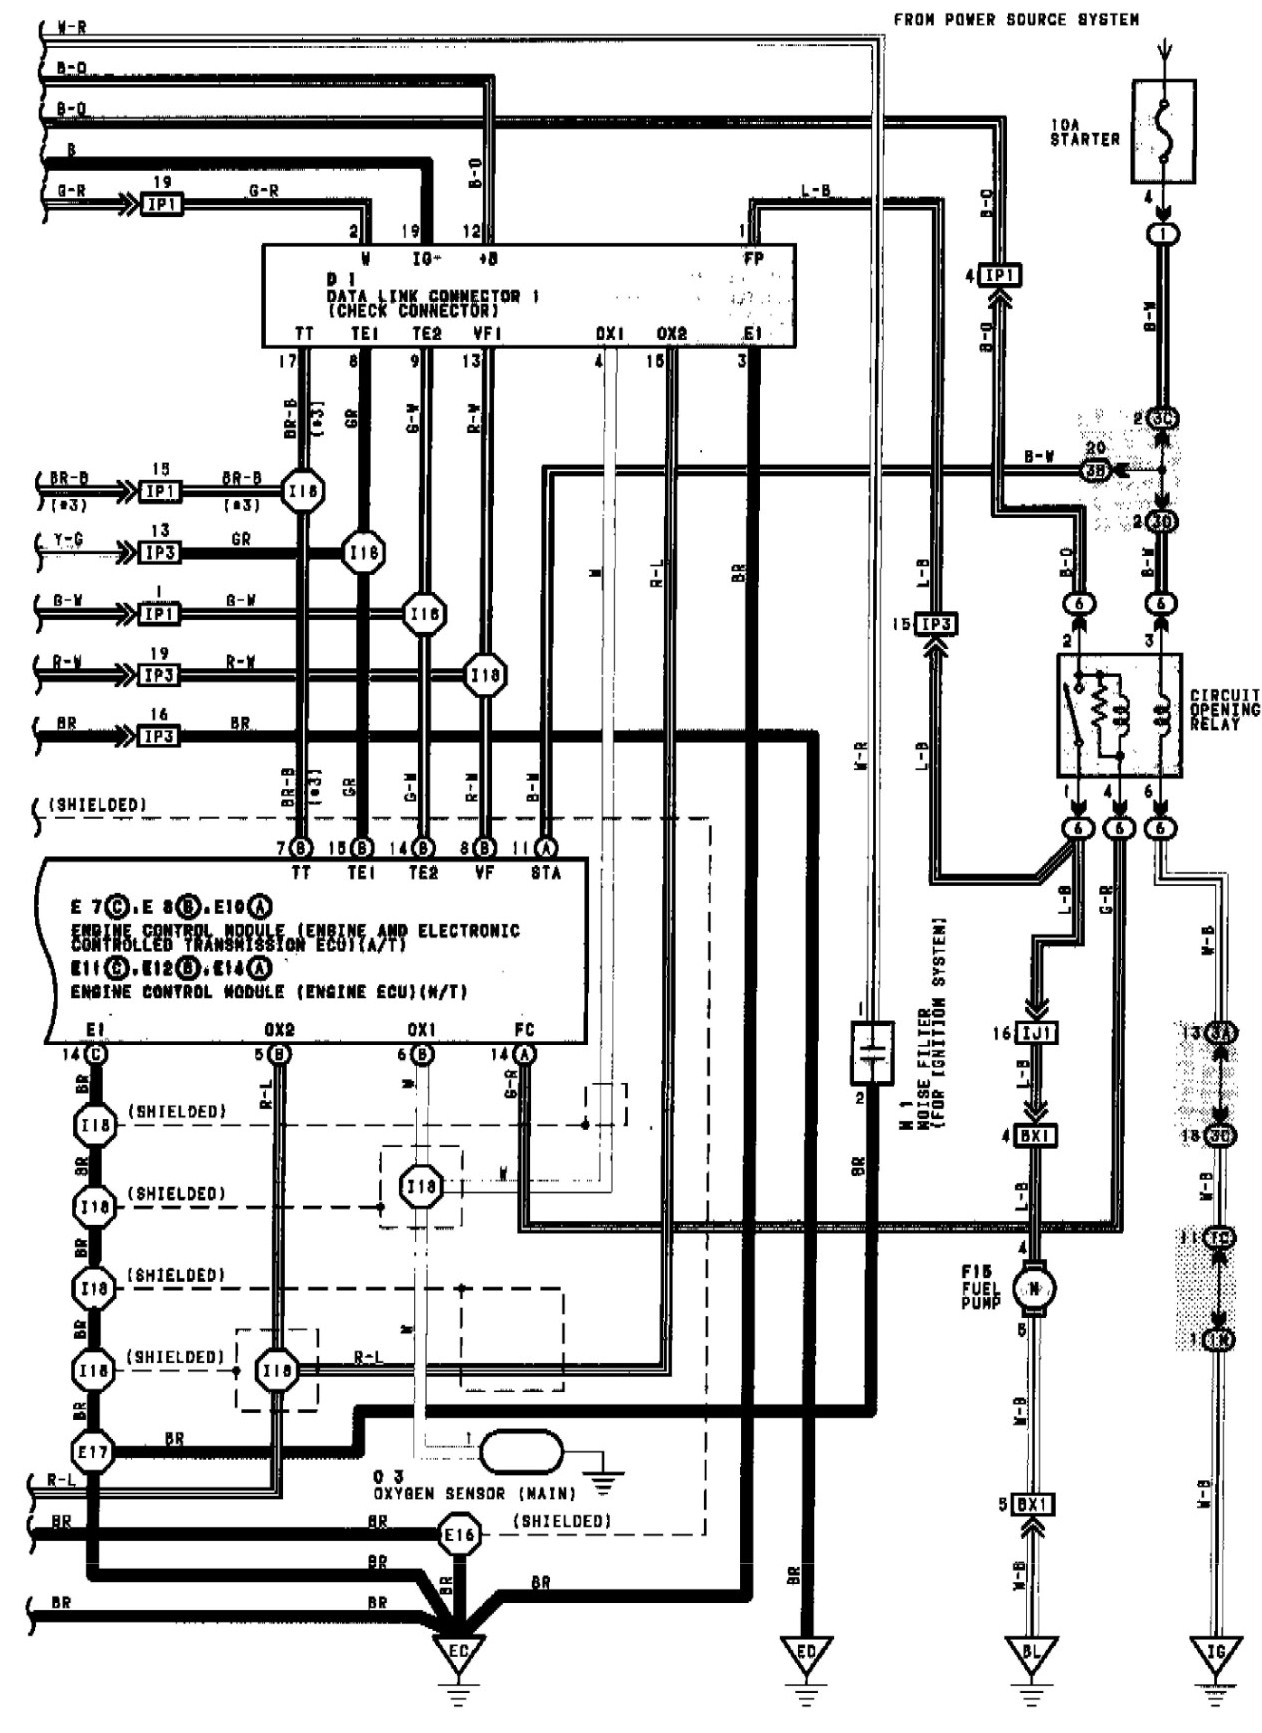 toyota fuel injector wiring diagram circuit connection diagram u2022 rh mytechsupport us